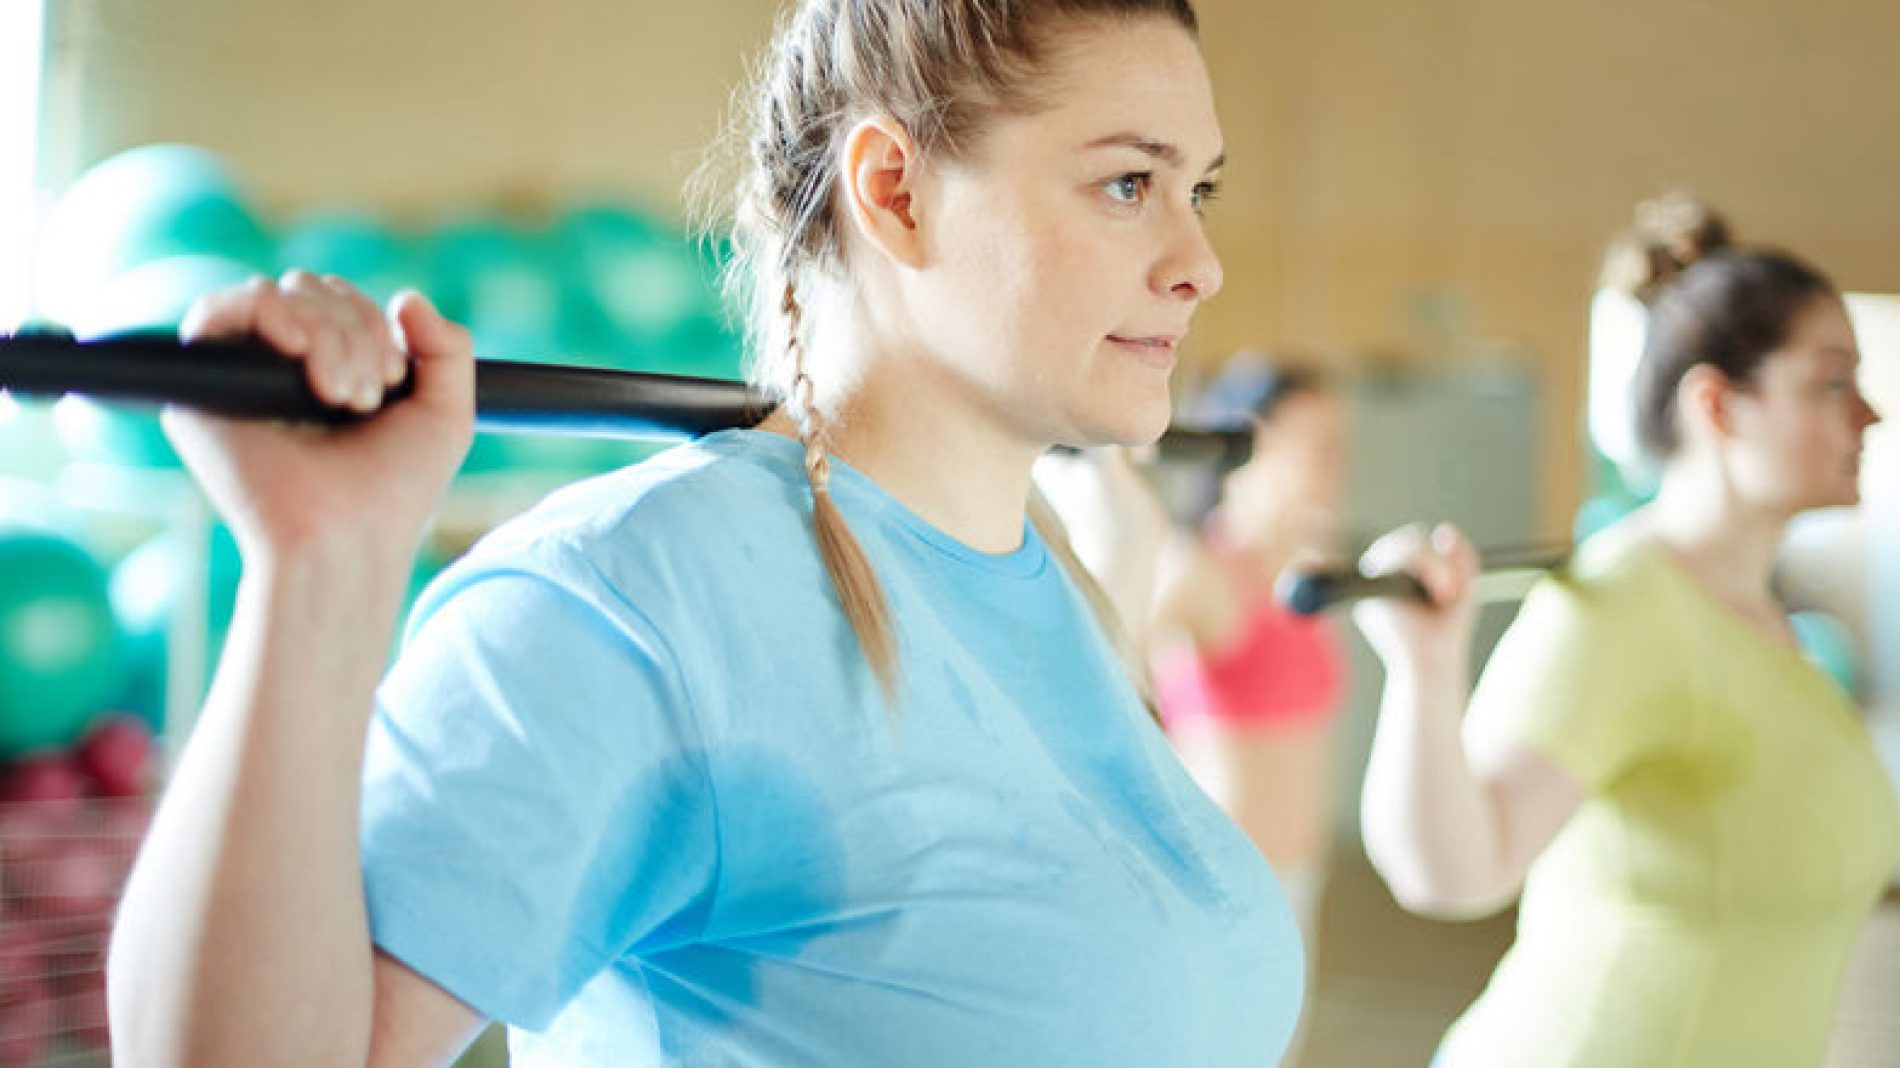 How to motivate yourself to lead a healthy lifestyle